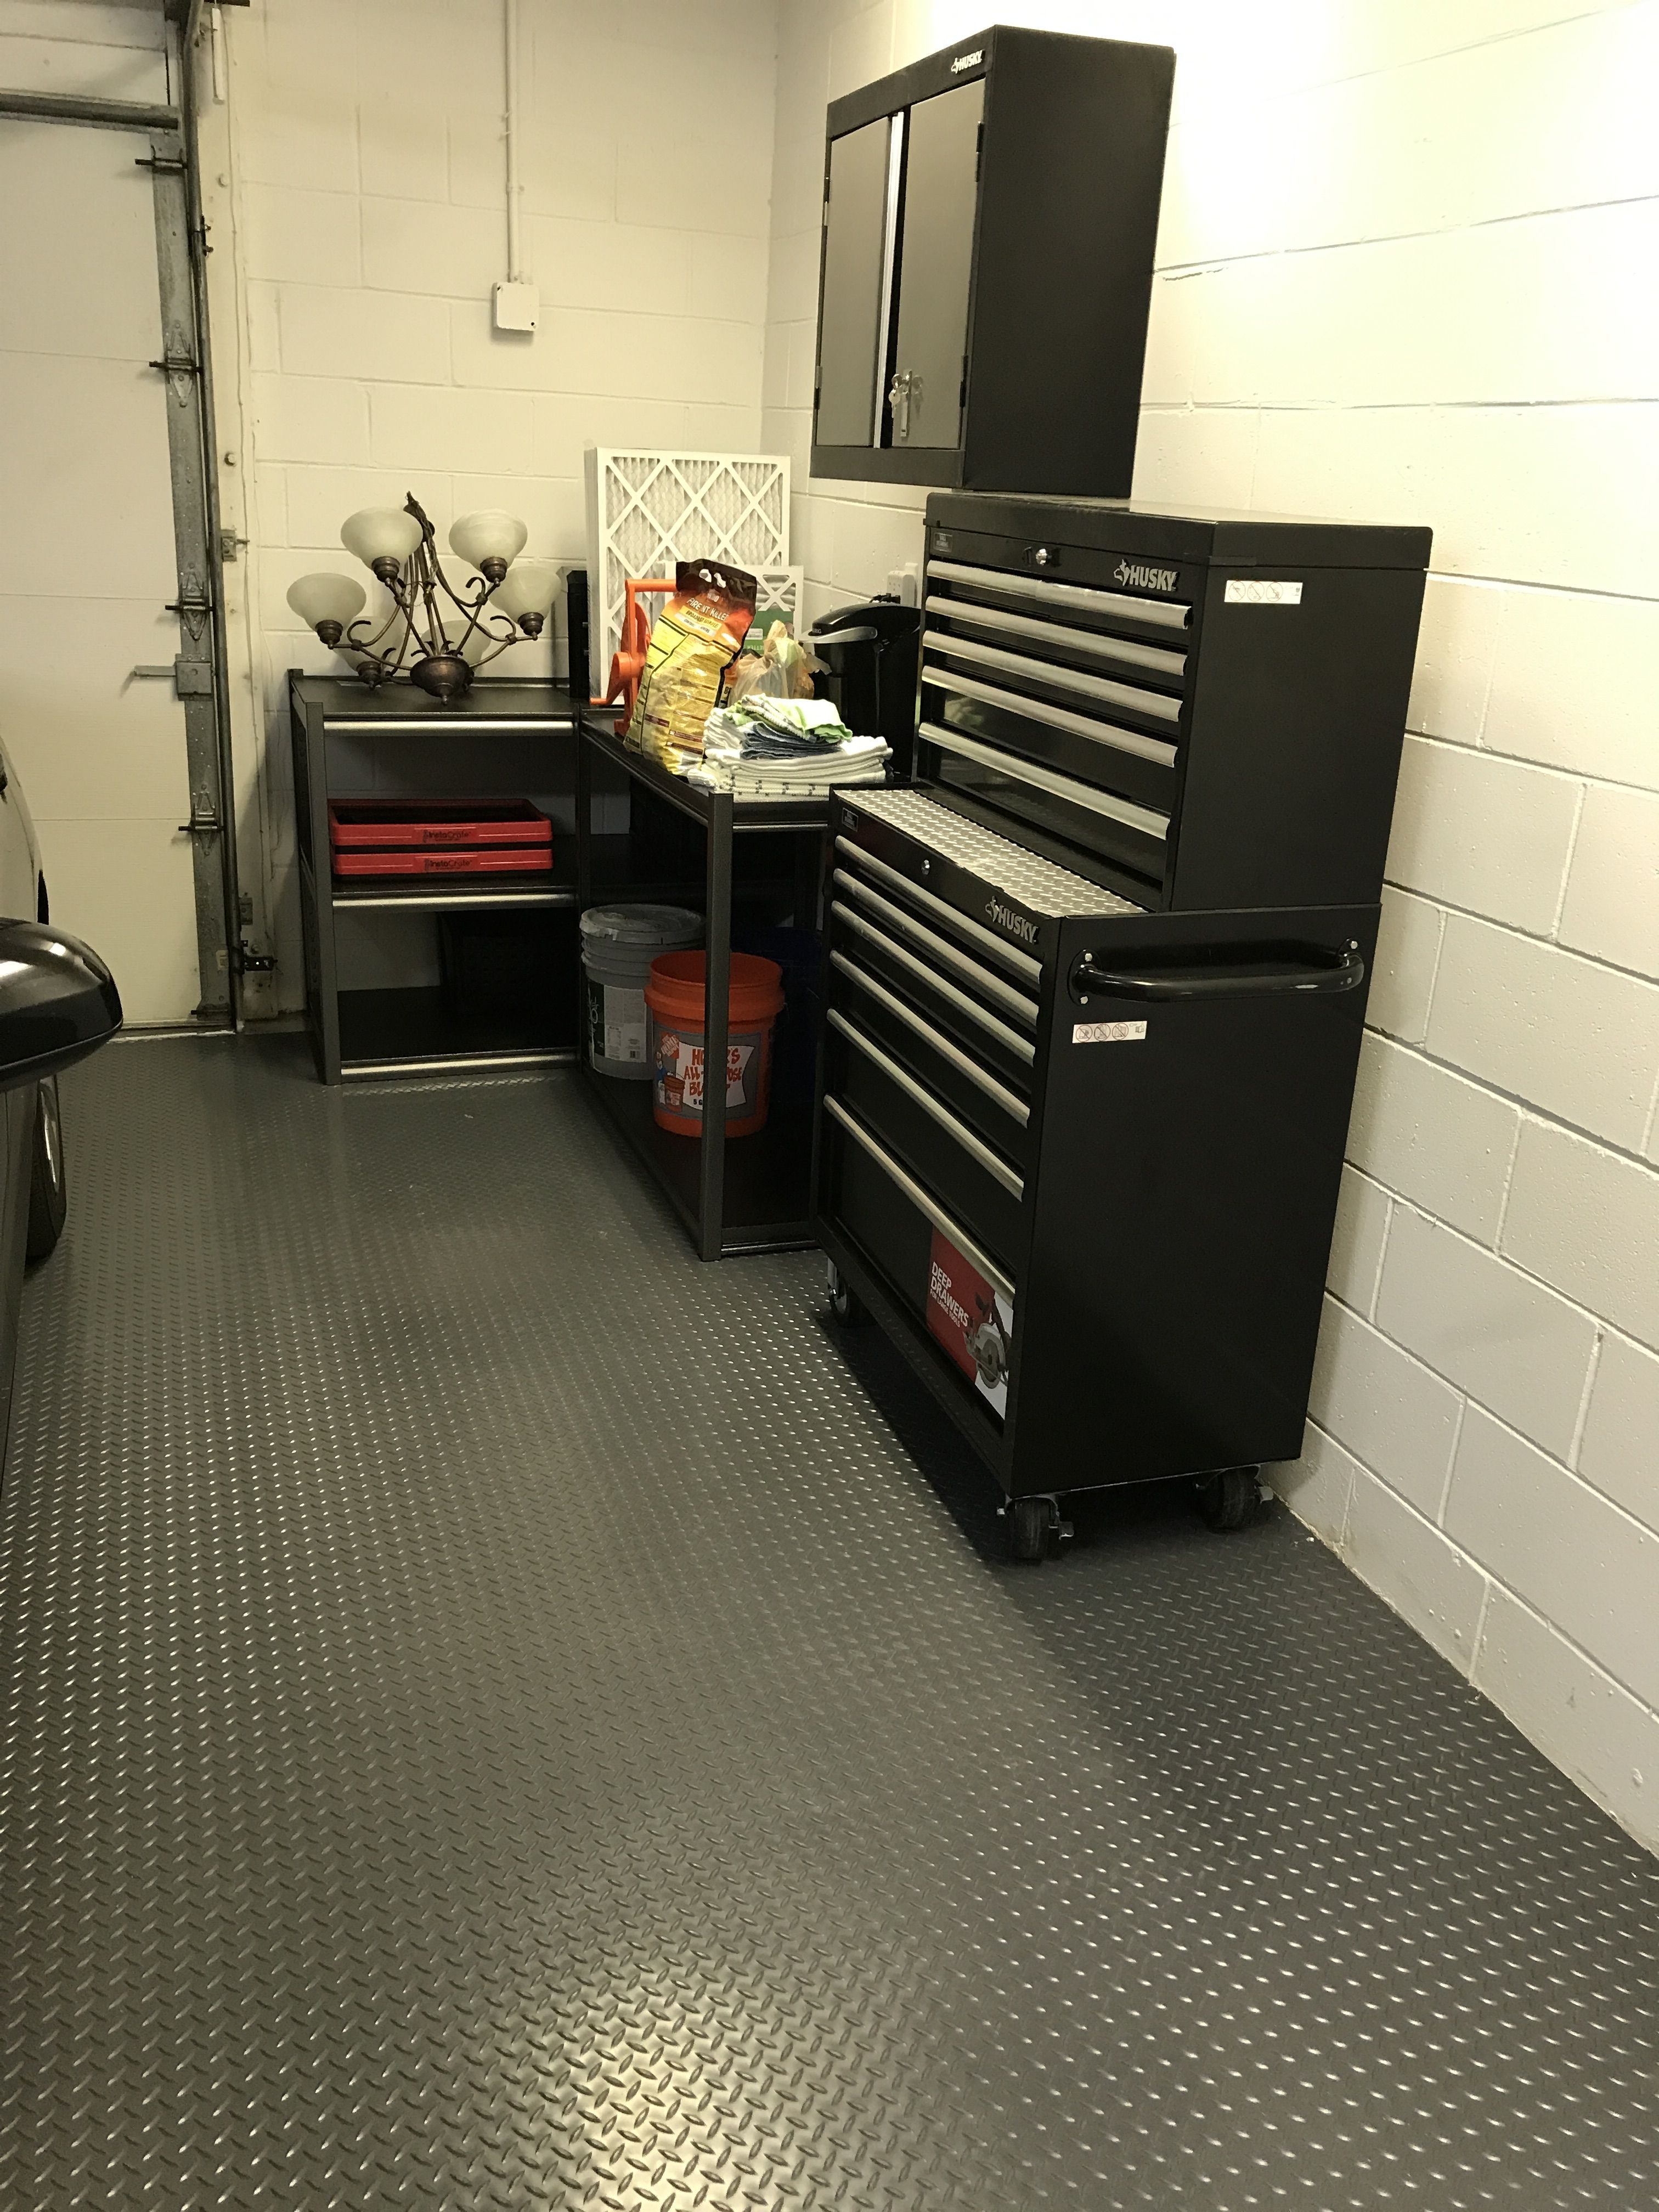 Garage Floor Tiles At Costco Costco Rubber Garage Floor Mats With Diamond Pattern Much Cheaper